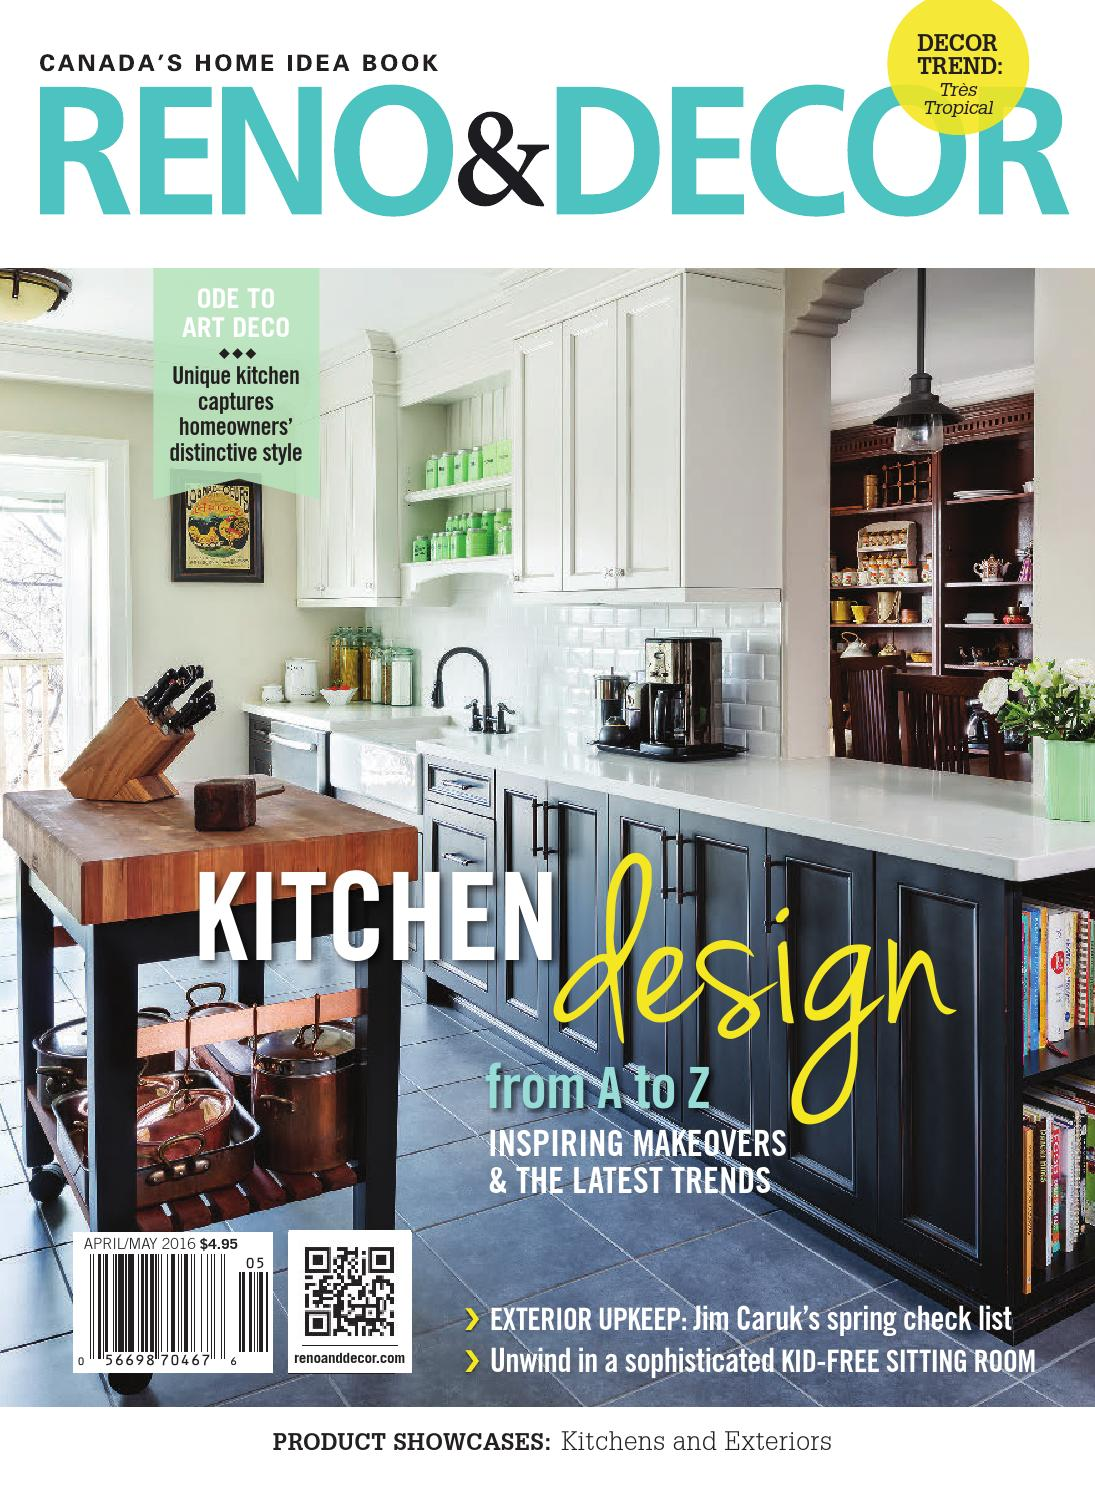 Home decor magazines list home decor magazines list for Best home design magazines